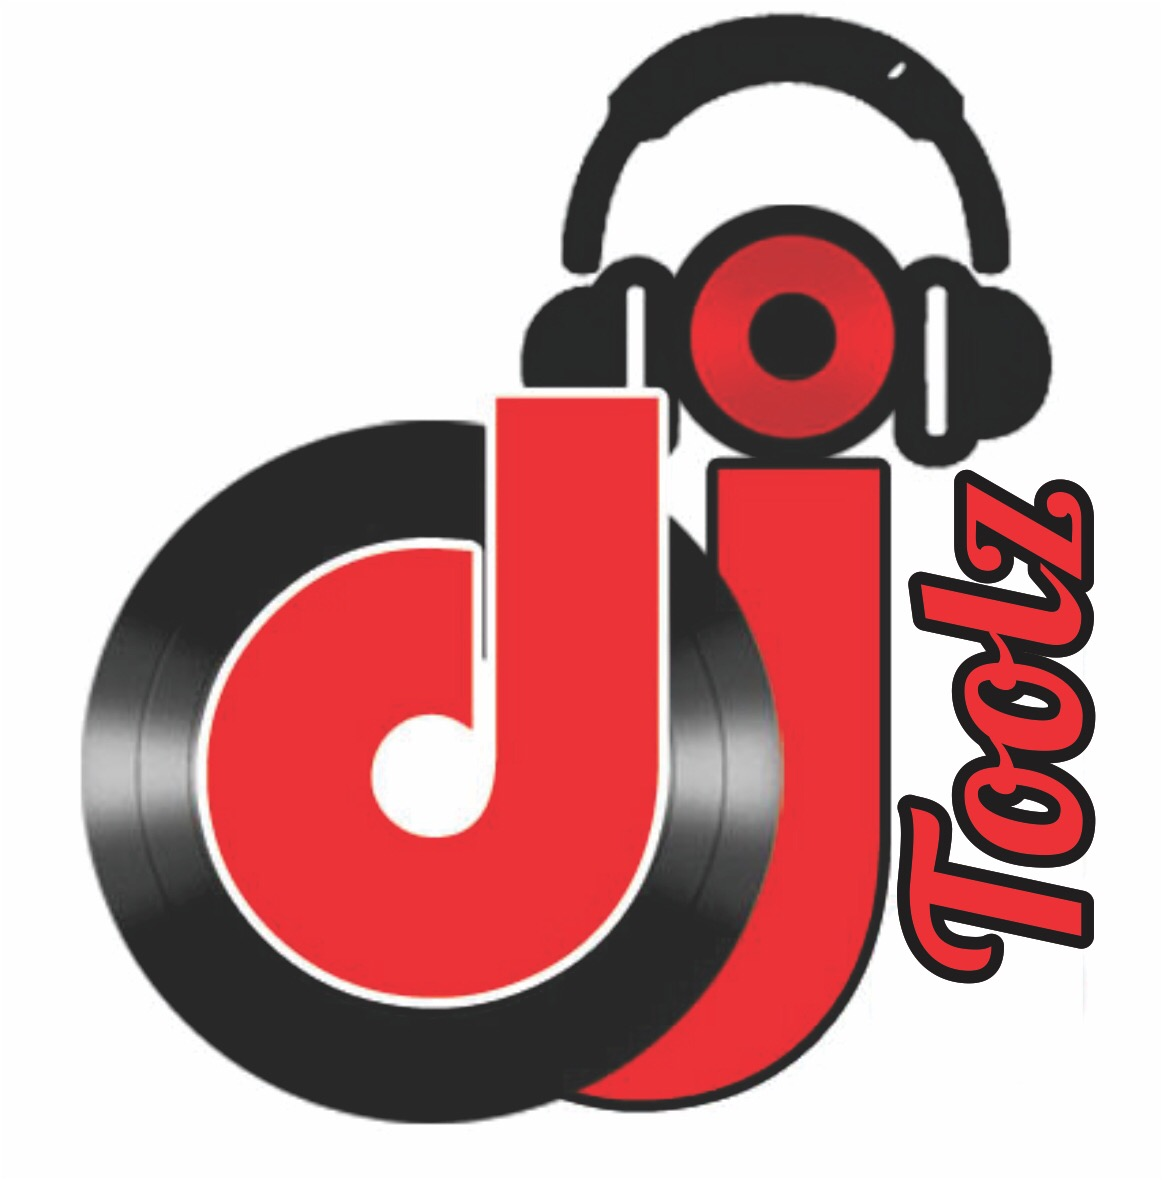 Contact DJ Toolz